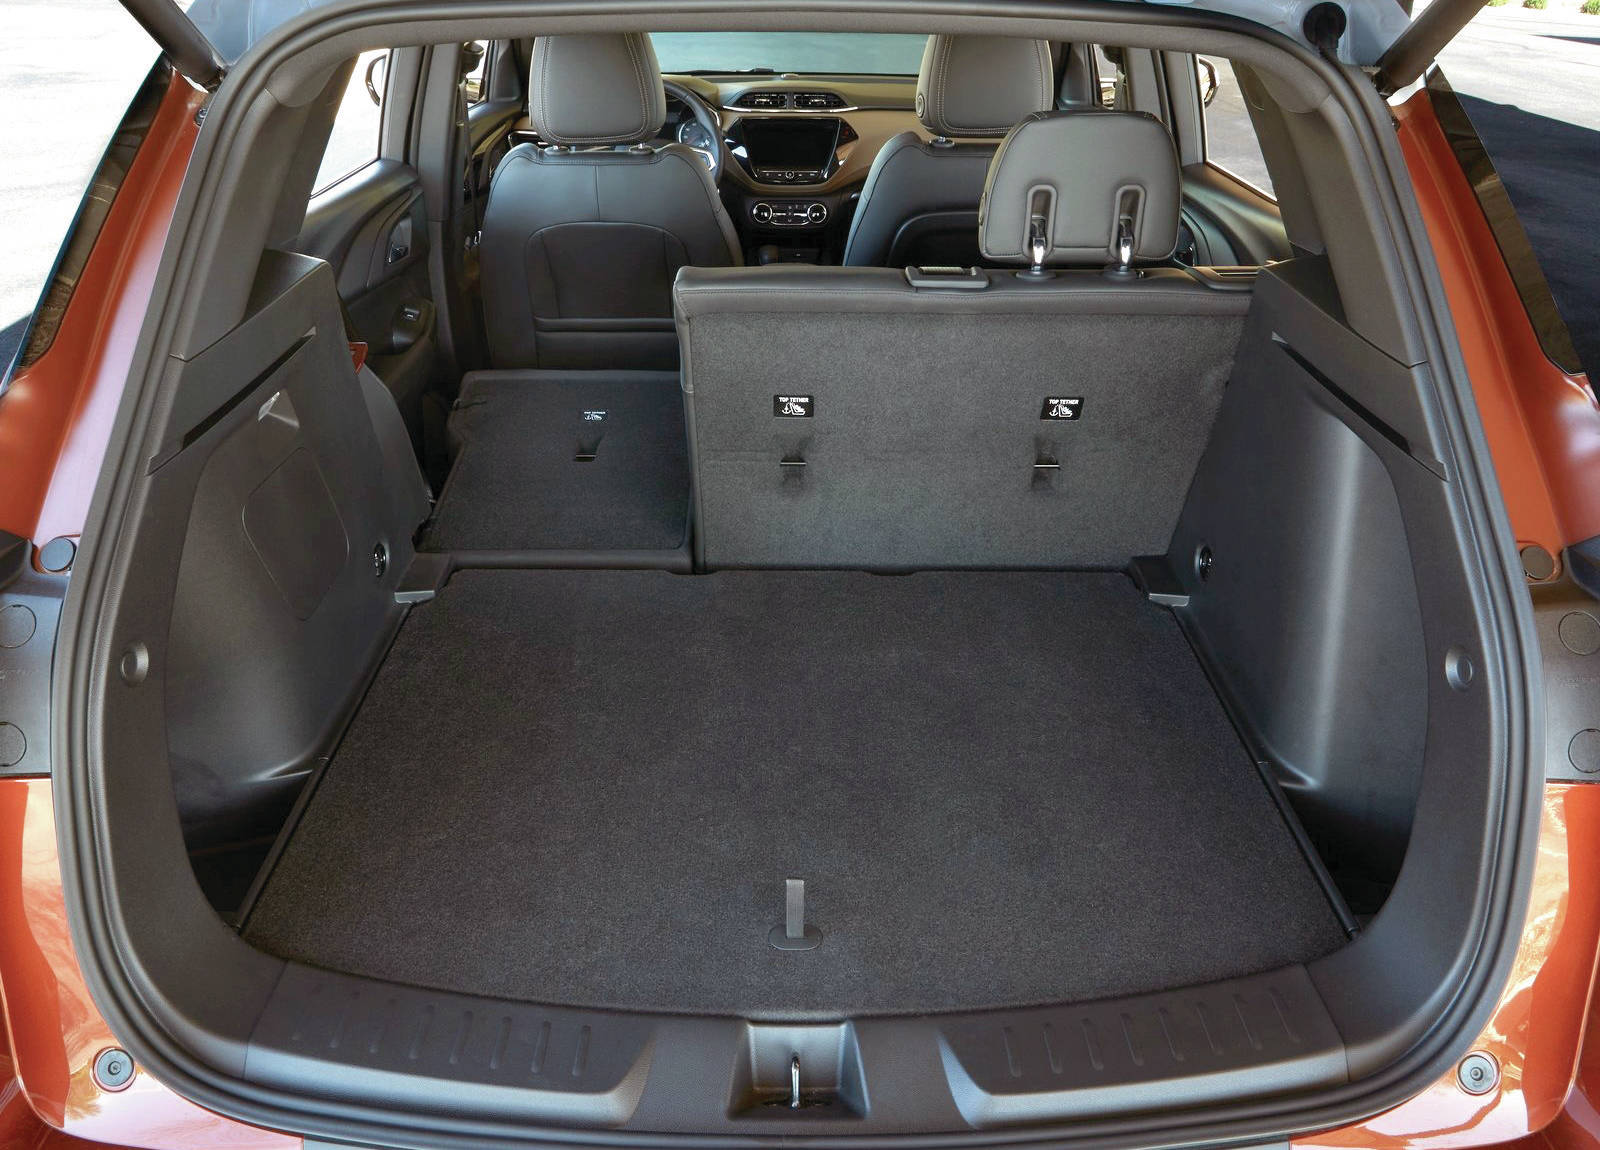 Although the Trailblazer is larger than the Trax, it does have more cargo room due to a taller ceiling. Note that the folding rear seat is not standard for base Trailblazer model. PHOTO: CHEVROLET